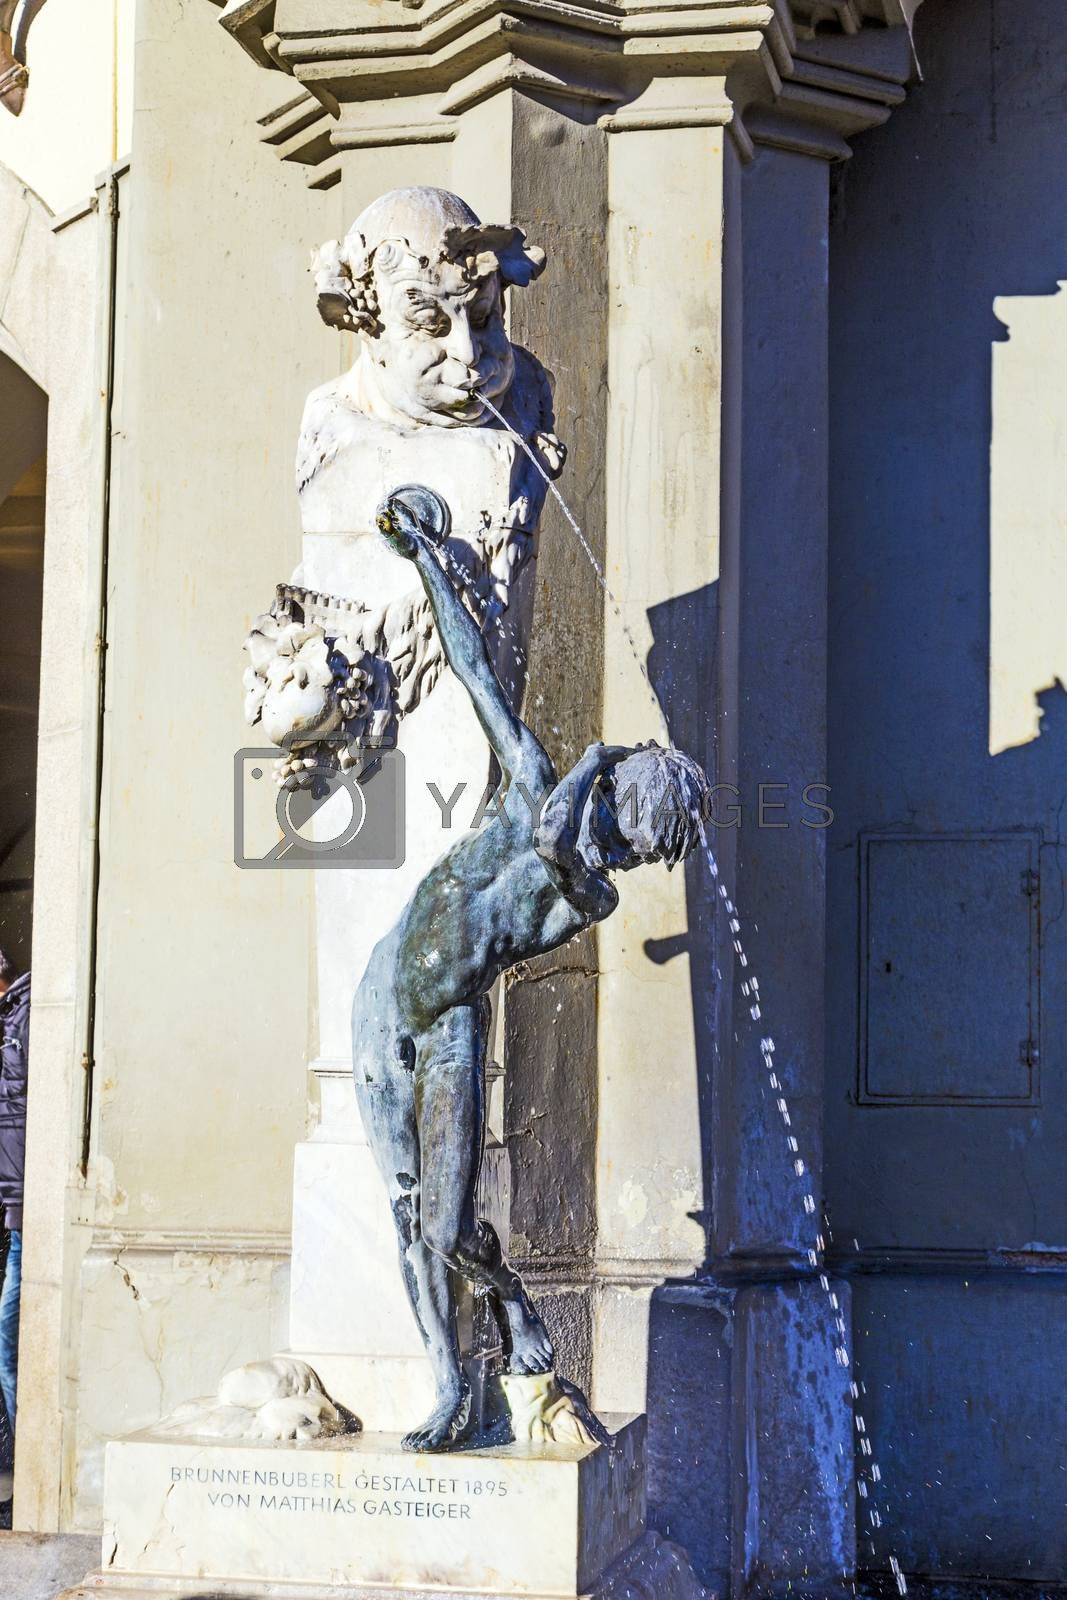 MUNICH, GERMANY - DEC 27, 2013: famous fountain Brunnenbuberl in Munich, Germany., Mathias Gasteiger created that sculpture in 1895.